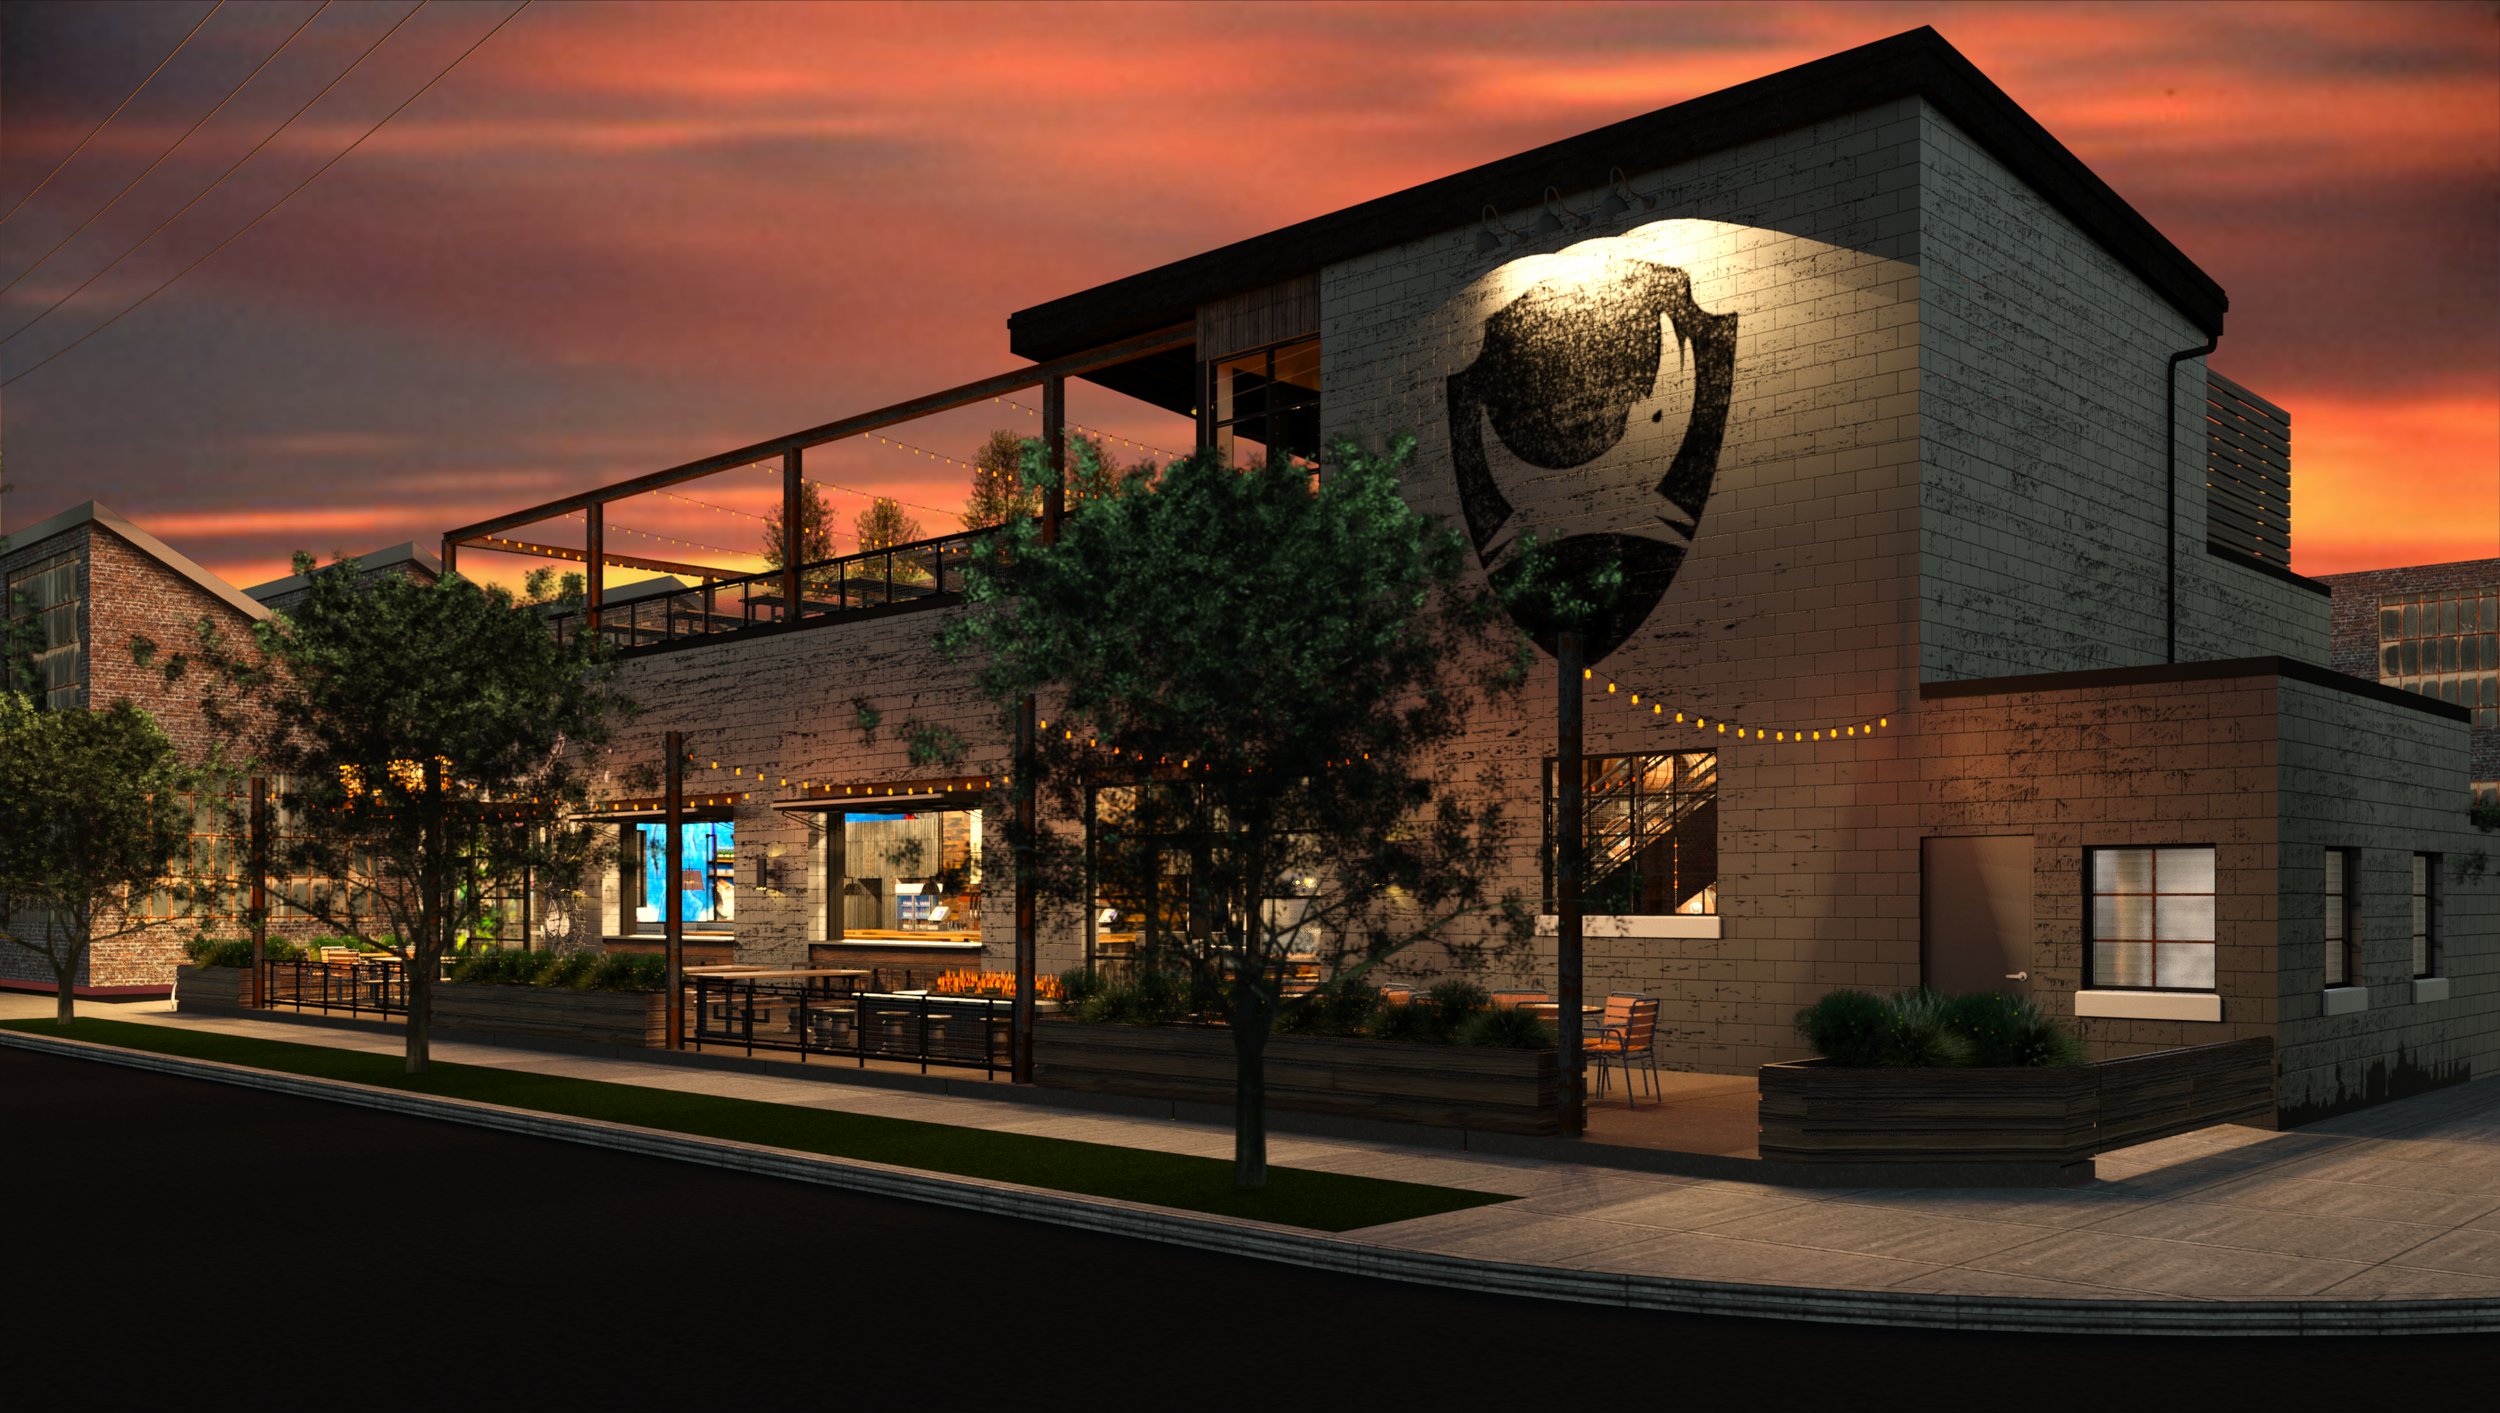 BrewDog_Franklinton_-_Central_blacount.rvt_2017-May-21_06-44-28PM-000__Render_-_Exterior_Looking_East_Night.png